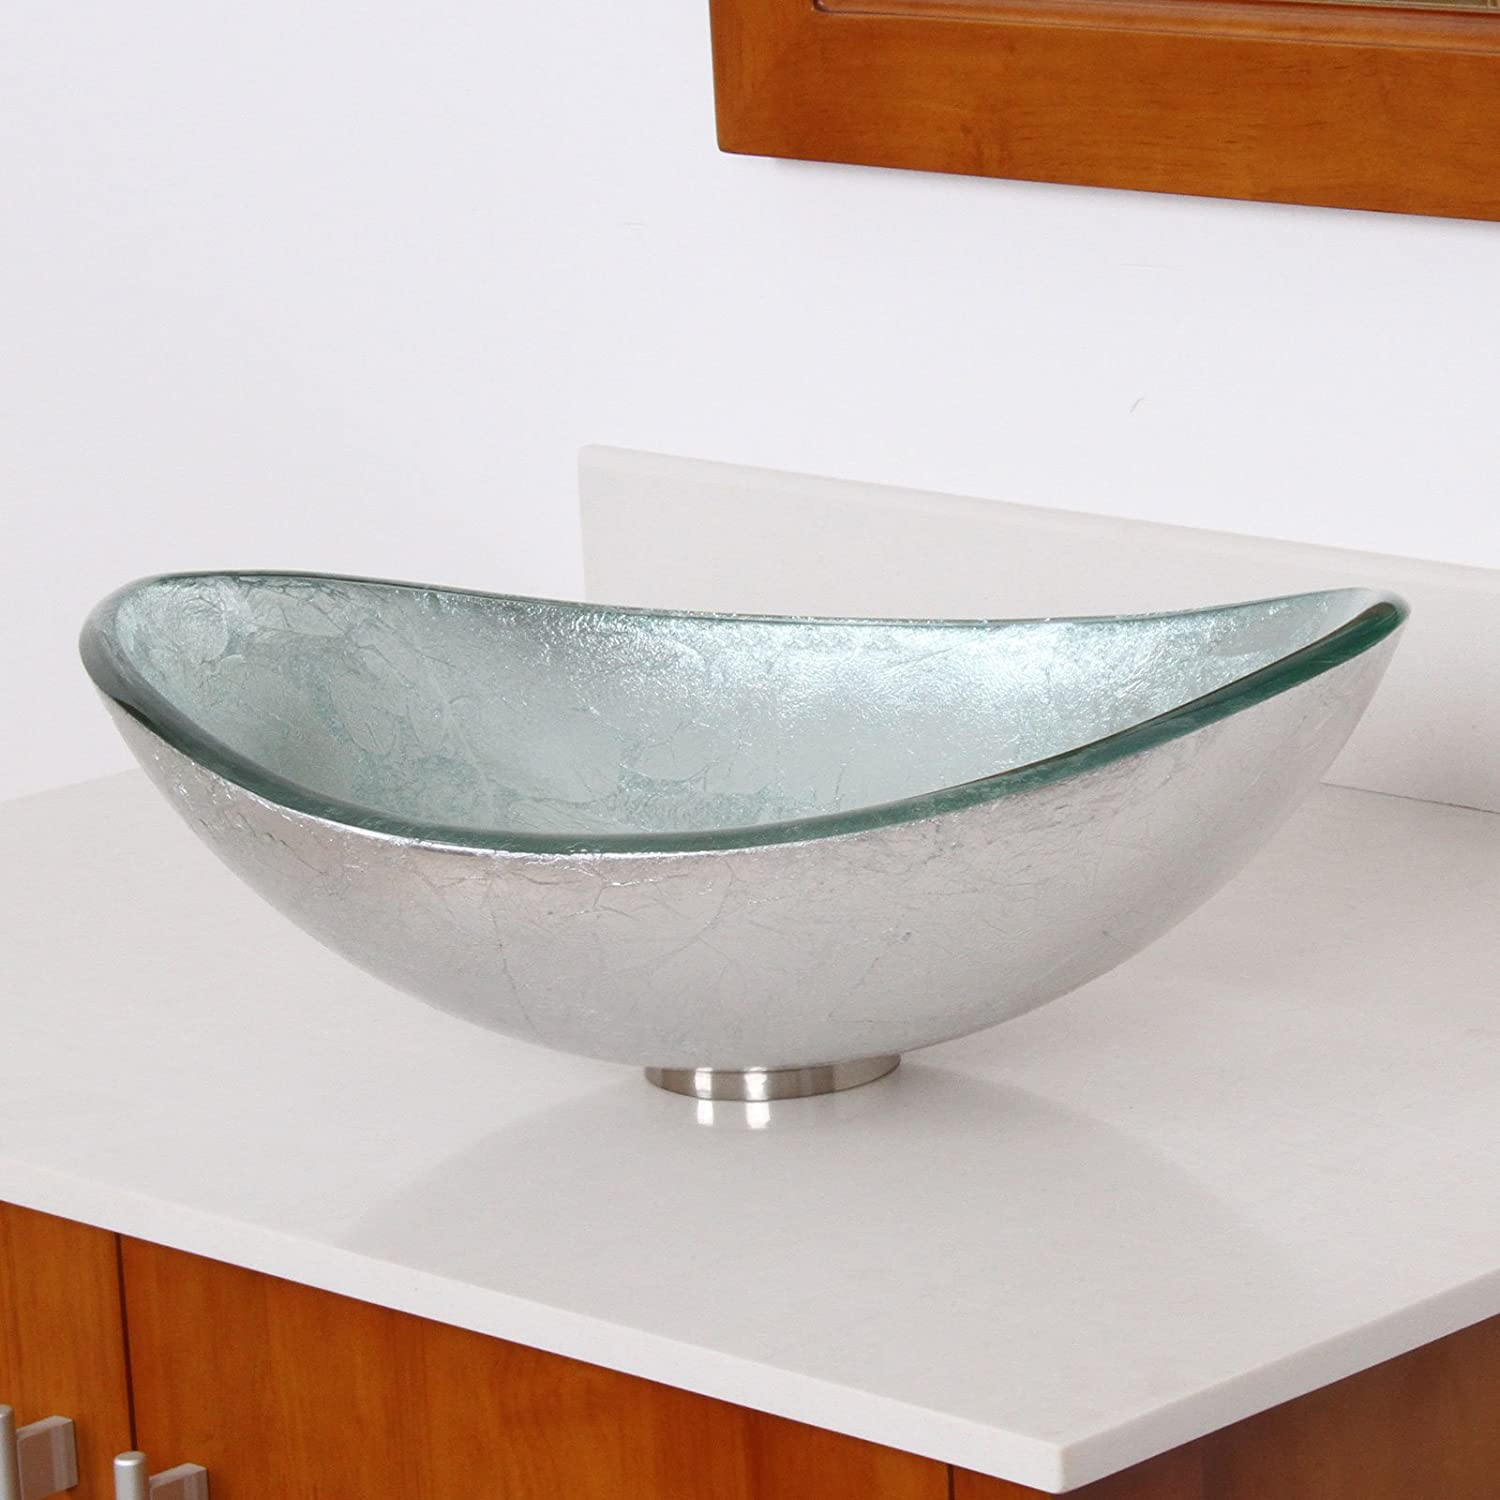 Hand Painted Foil Boat Shaped Oval Bowl Bottom Vessel Bathroom Sink Sink  Finish: Silver     Amazon.com